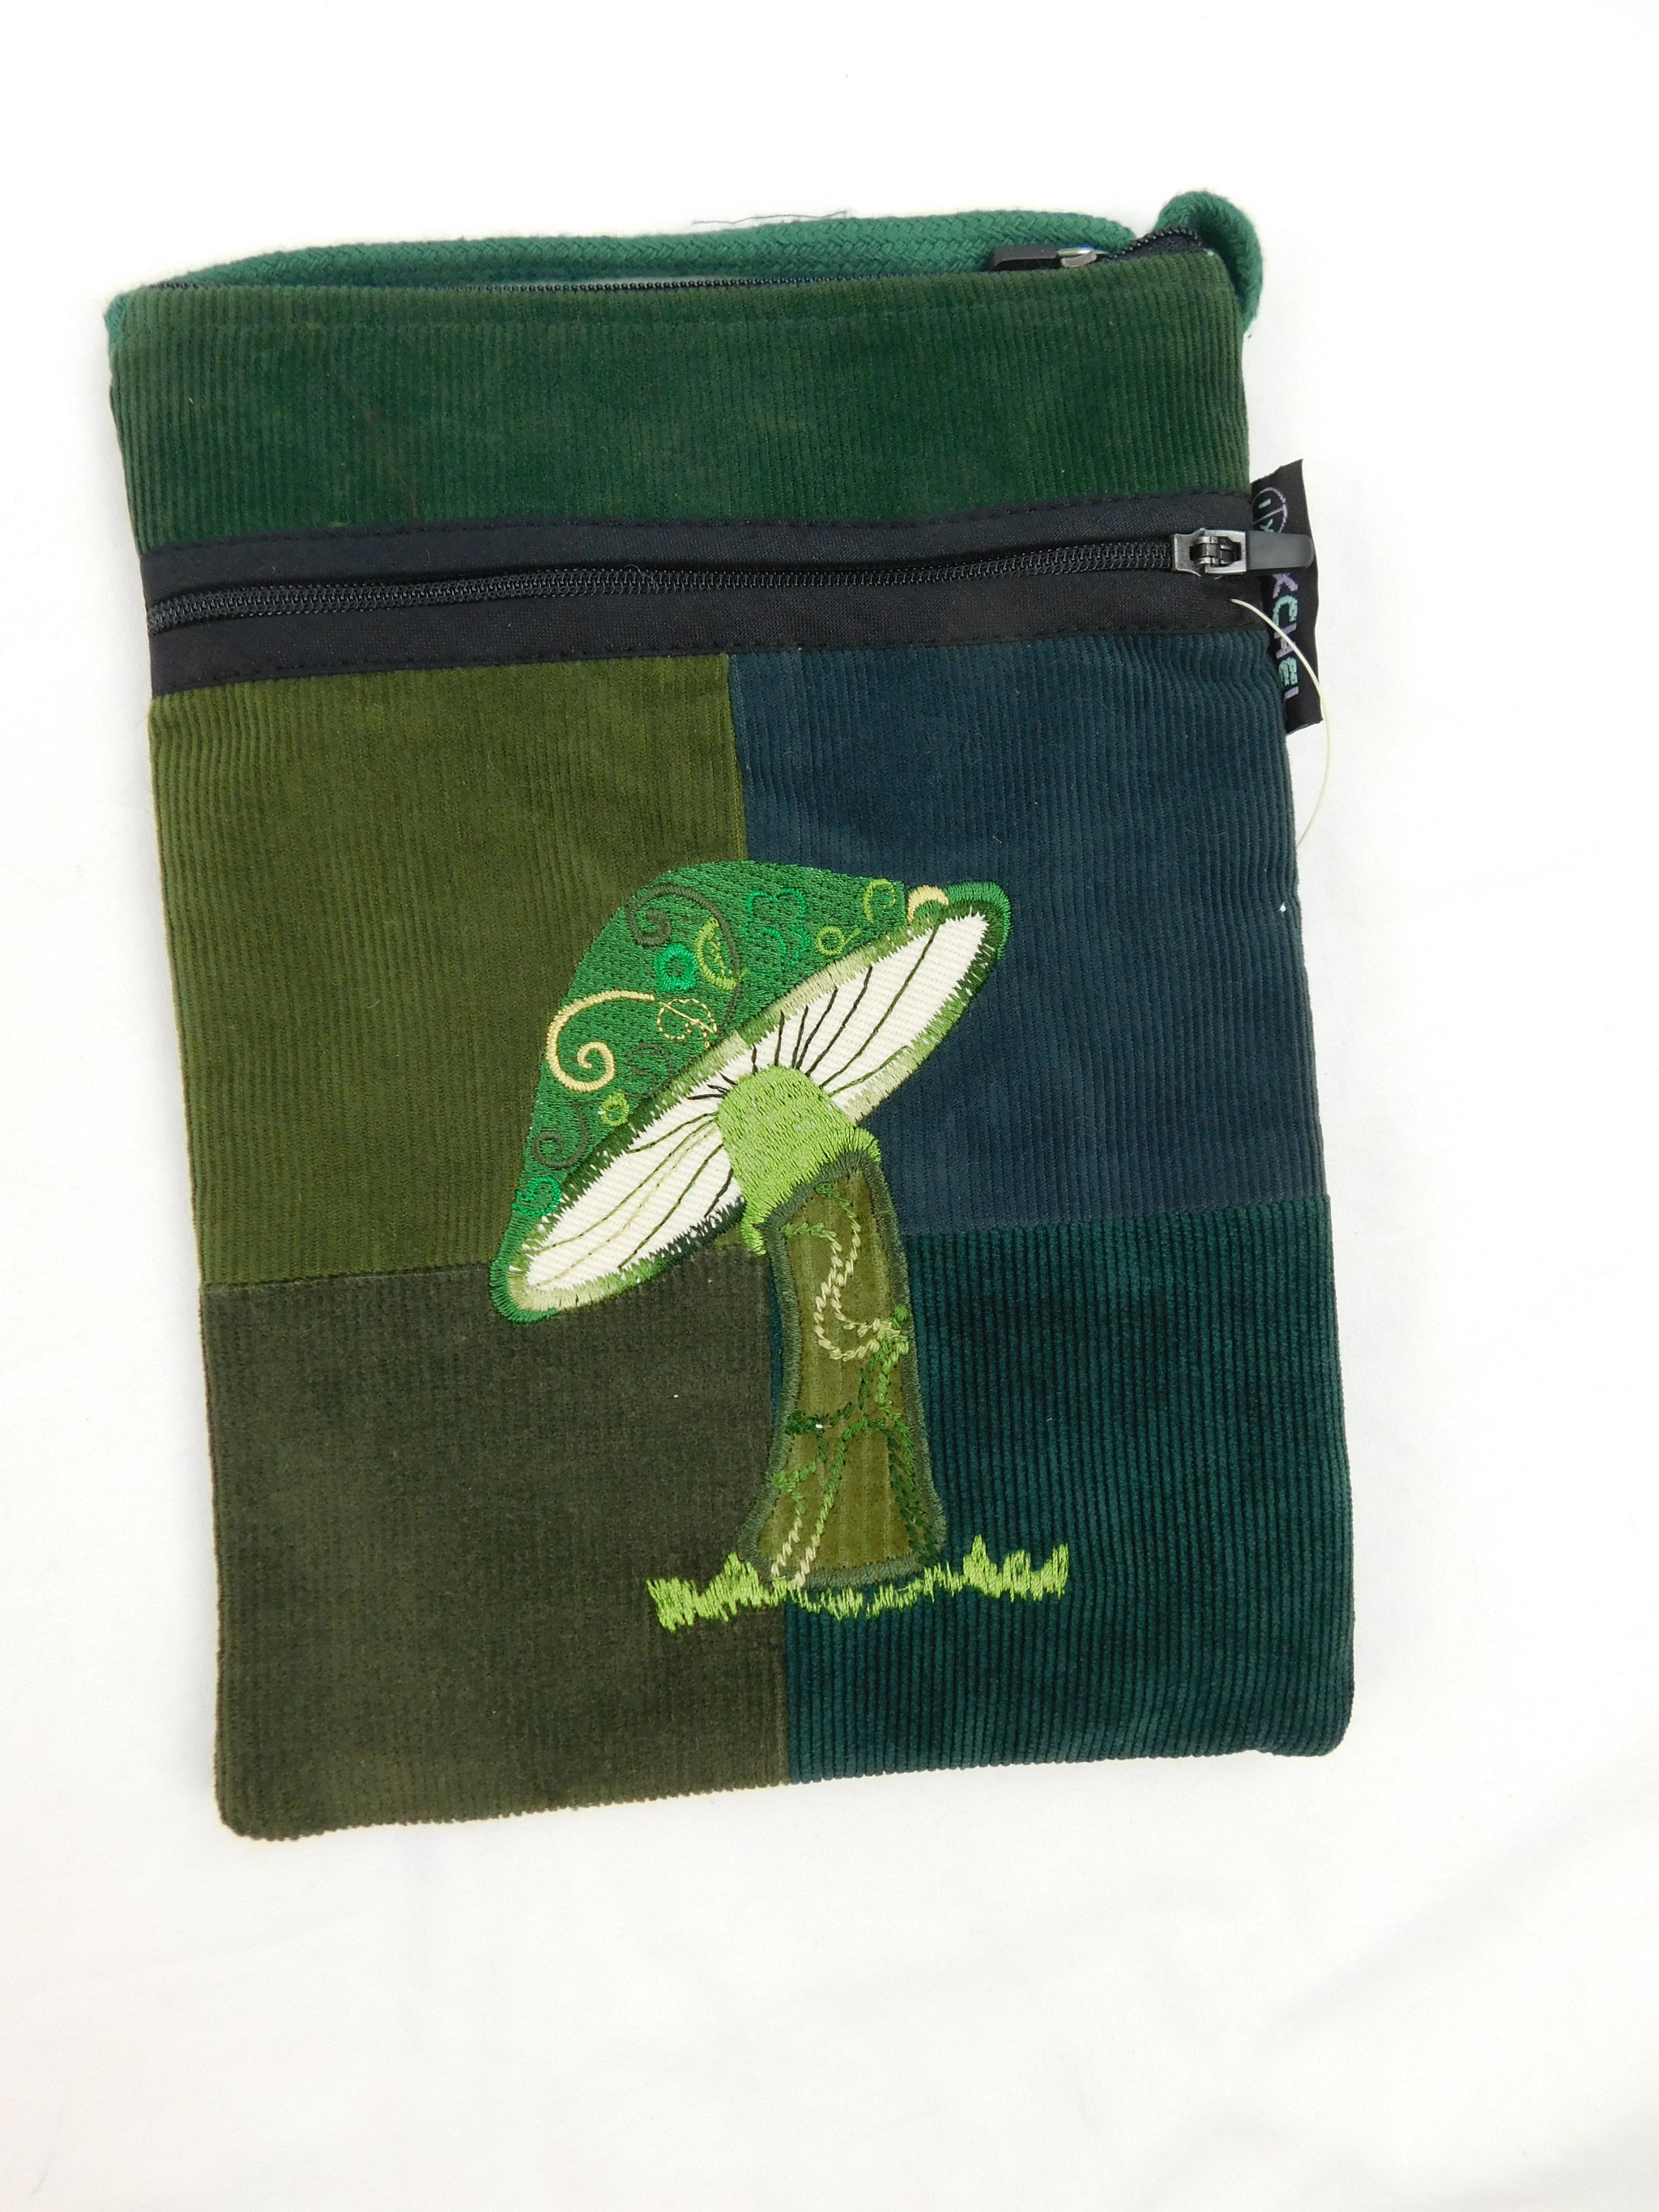 Passport purse in patchwork corduroy with mushroom embroidery